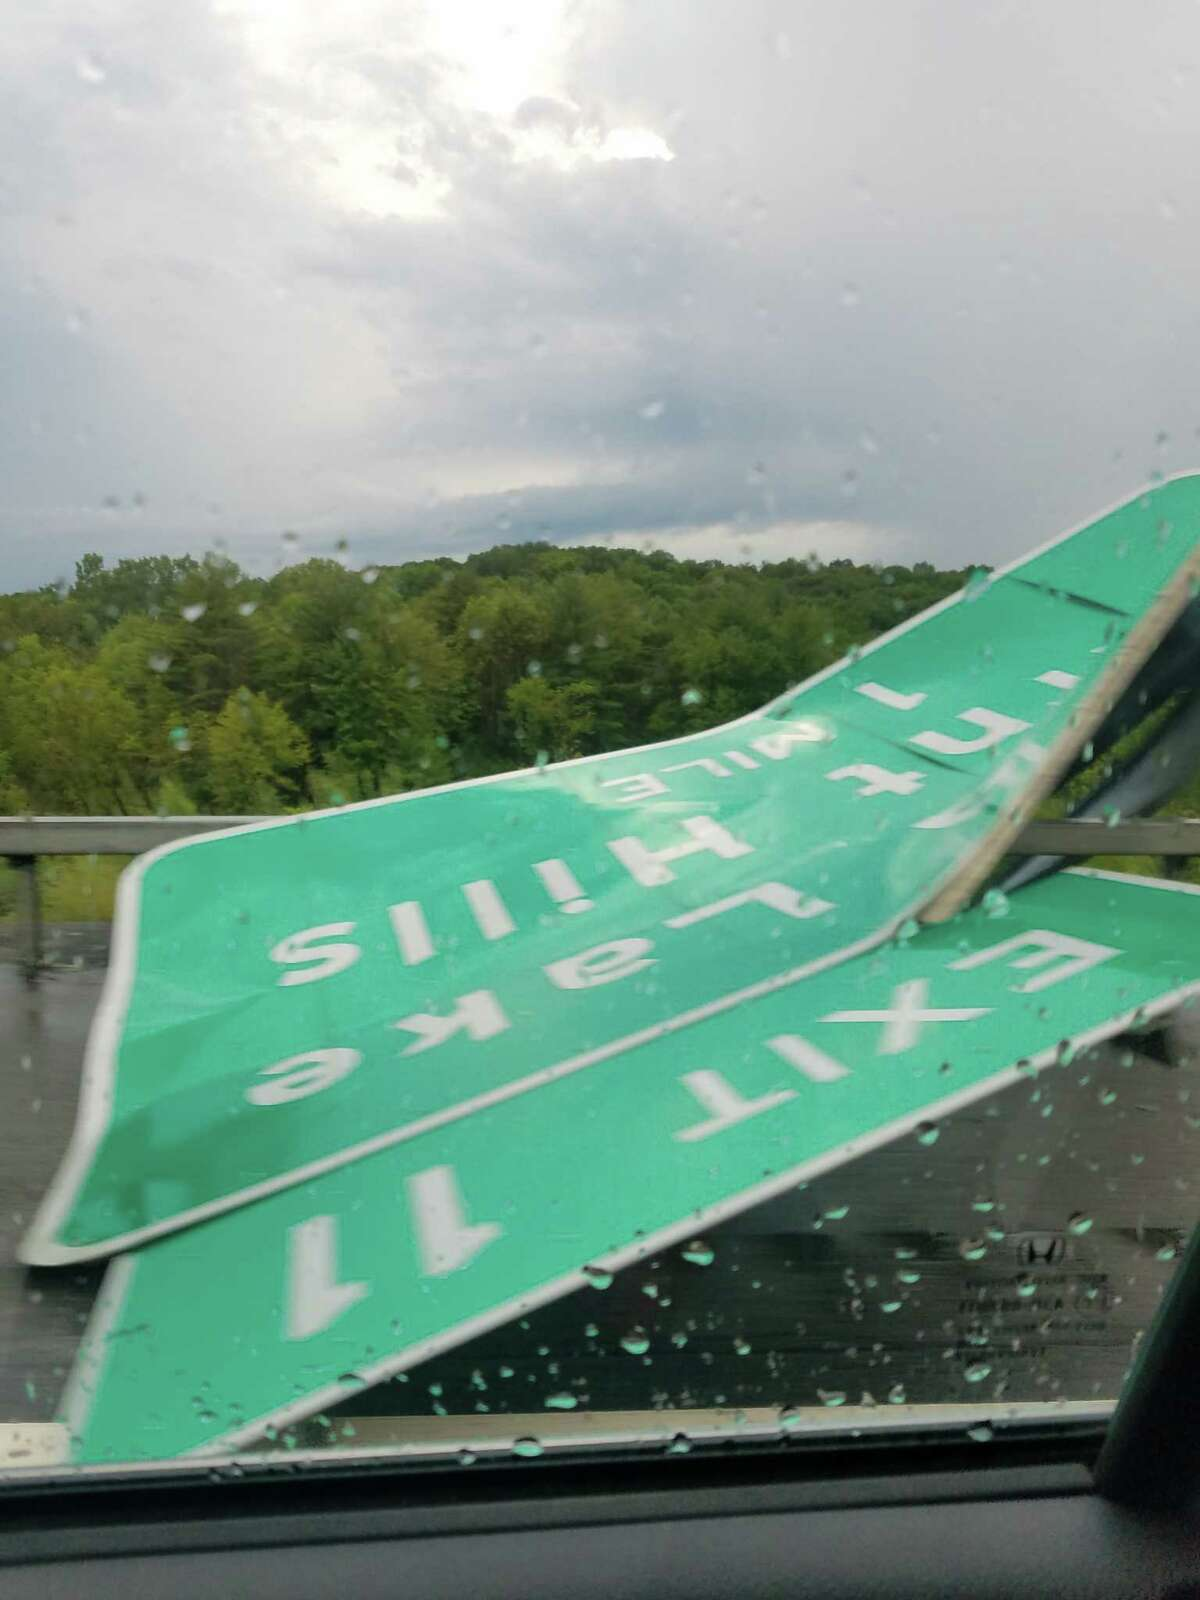 Barbara and Jim LaBate of Clifton Park were driving south on the Northway Sunday night Aug. 18 during the storm when they saw the Exit 11 sign had been hit and twisted into the right lane.